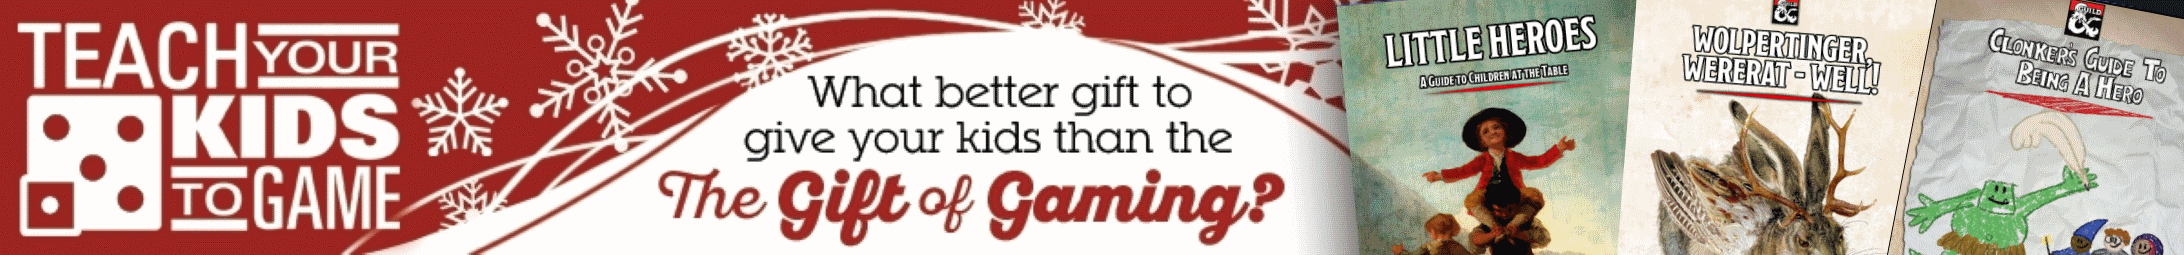 Teach Your Kids Holiday Sale